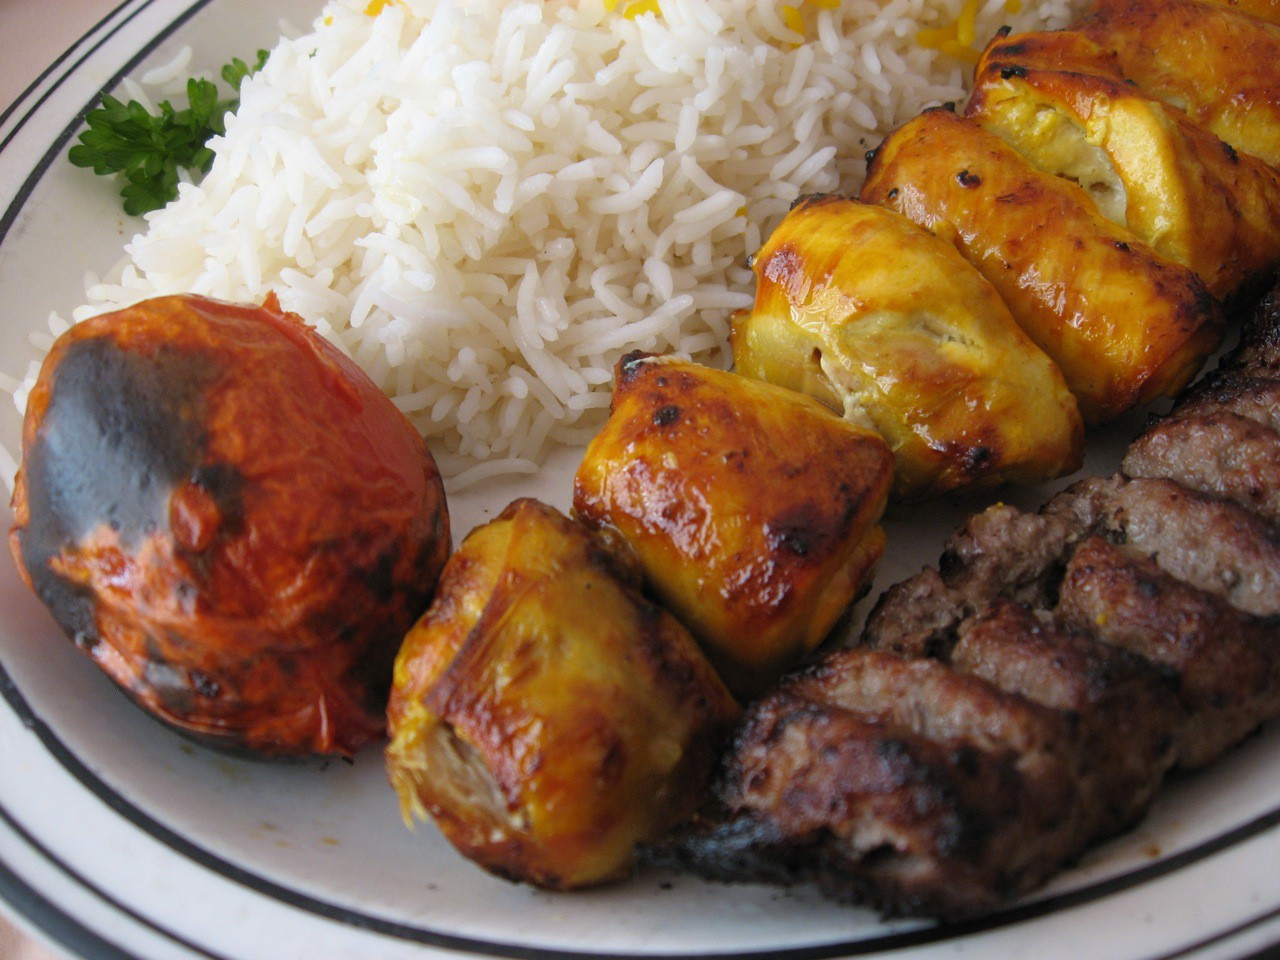 Chicken and beef kebab | © Arnold Gatilao / Flickr